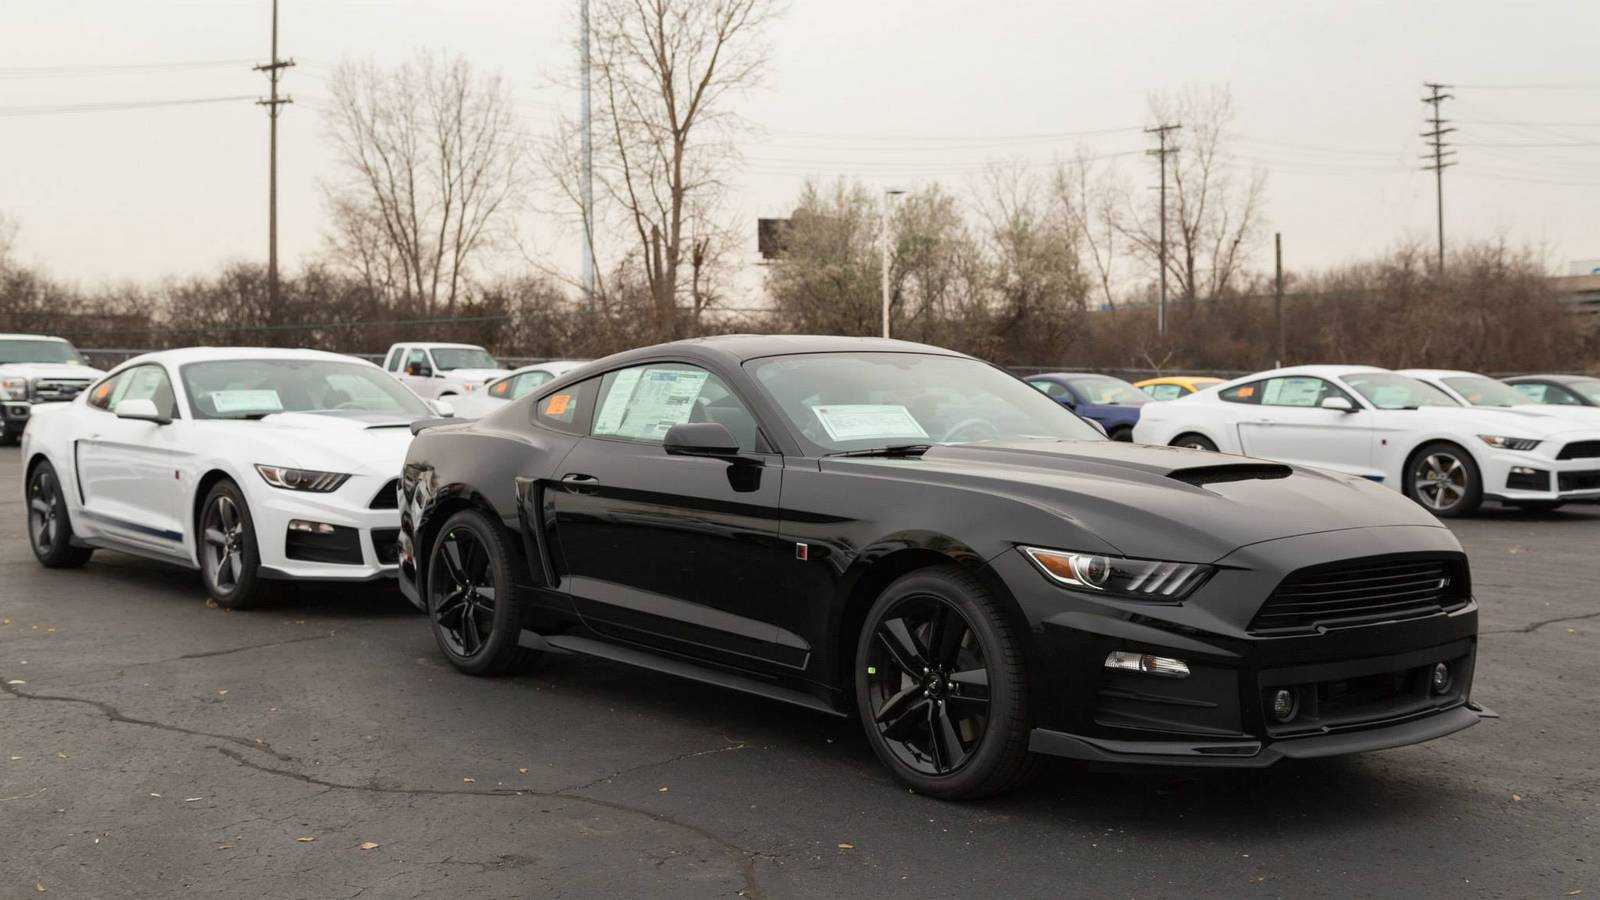 roush reveals first batch of production ready 2015 rs mustangs. Black Bedroom Furniture Sets. Home Design Ideas